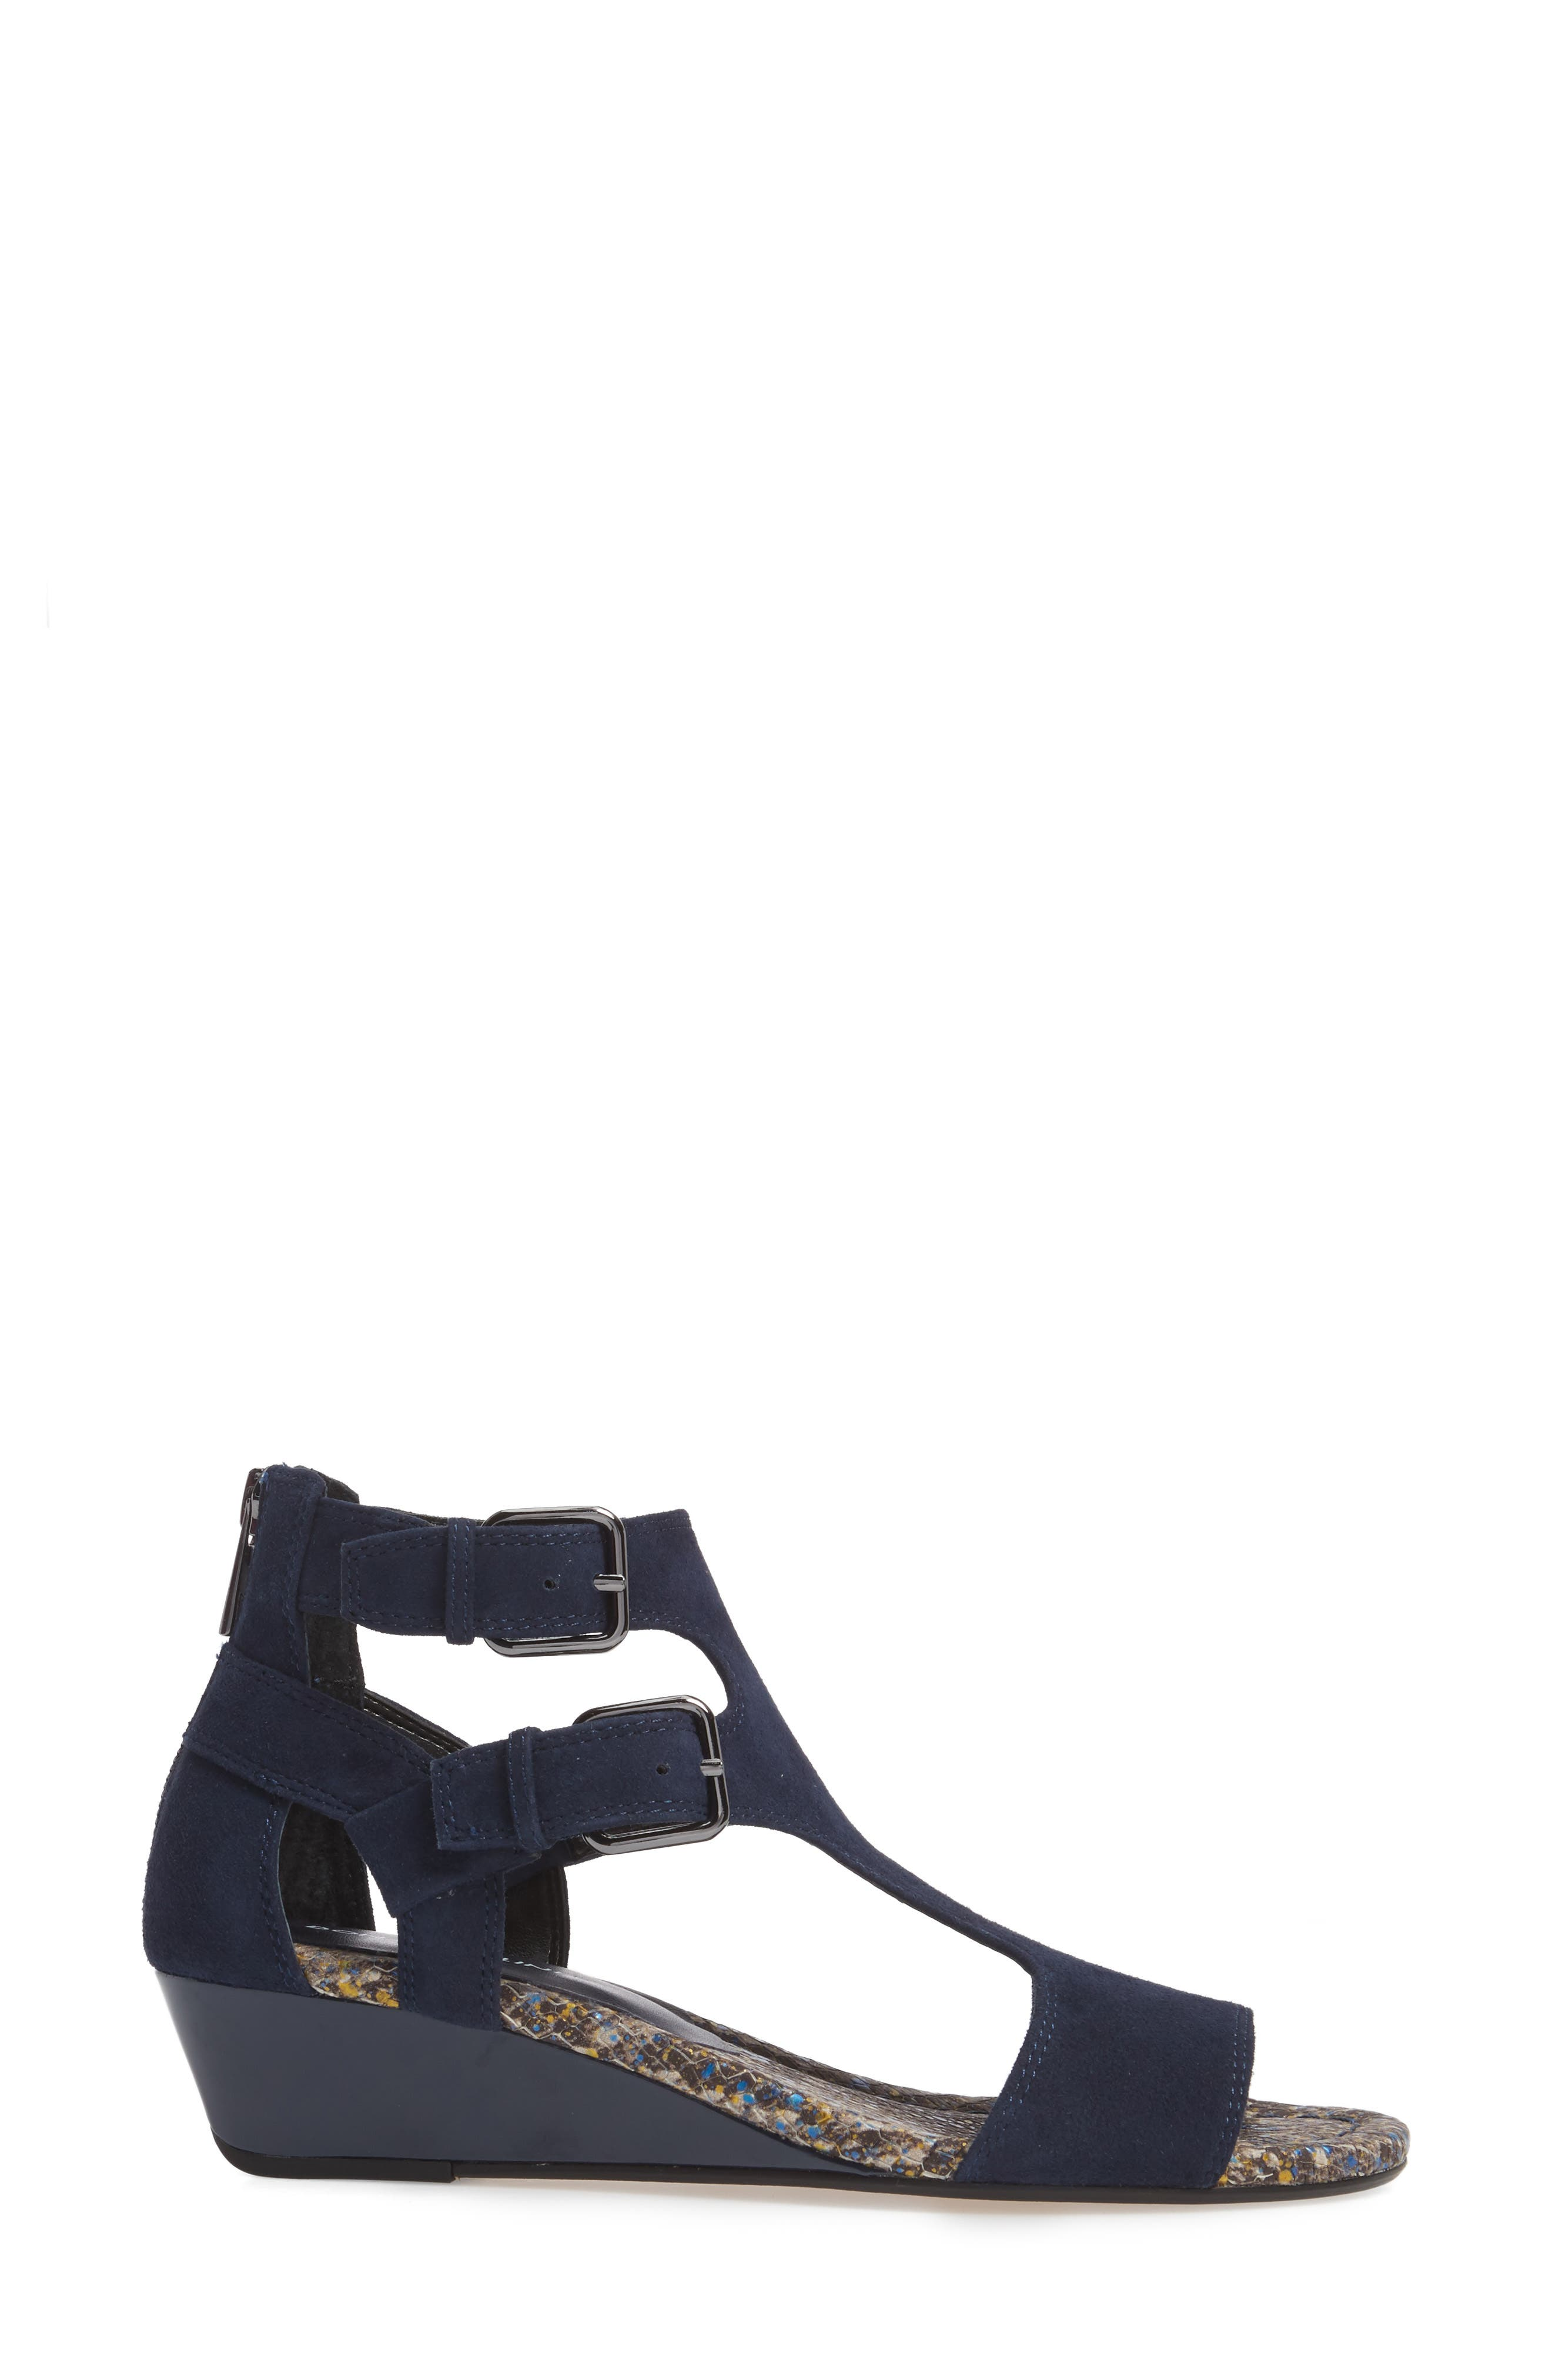 Alternate Image 3  - Donald Pliner Eden II Wedge Sandal (Women)